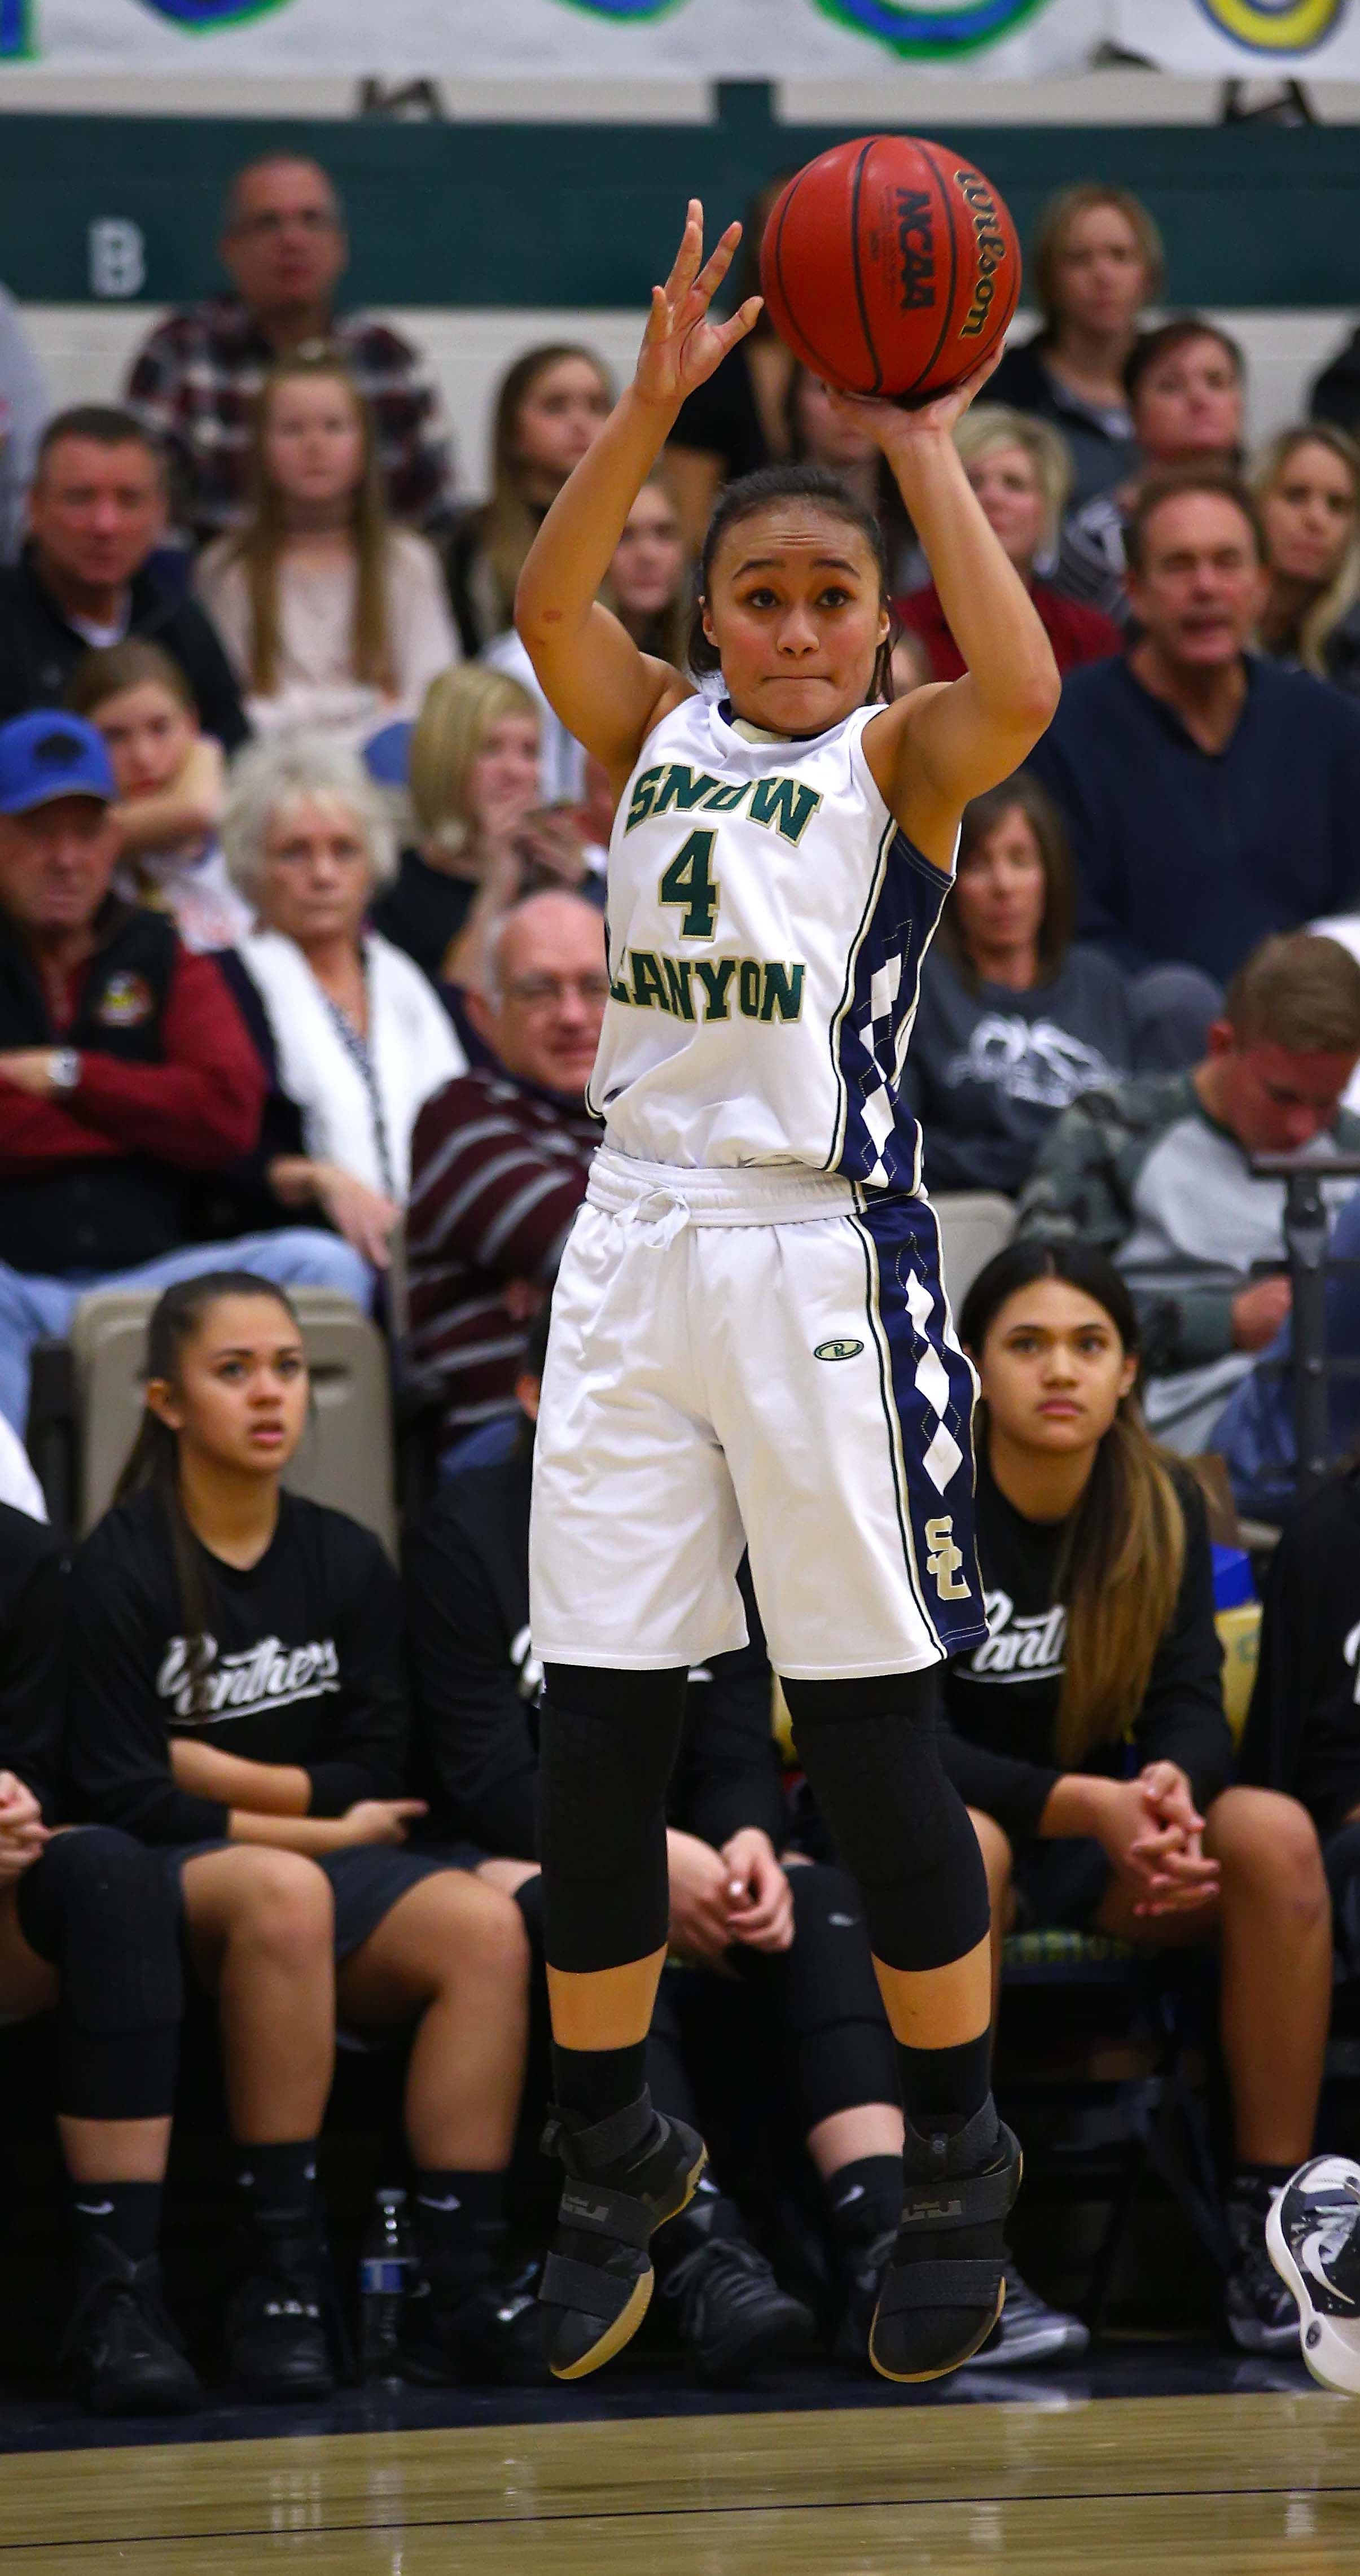 Snow Canyon's Jasmine Lealao (4), Snow Canyon vs. Pine View, Girls Basketball, St. George, Utah, Jan. 10, 2017, | Photo by Robert Hoppie, ASPpix.com, St. George News